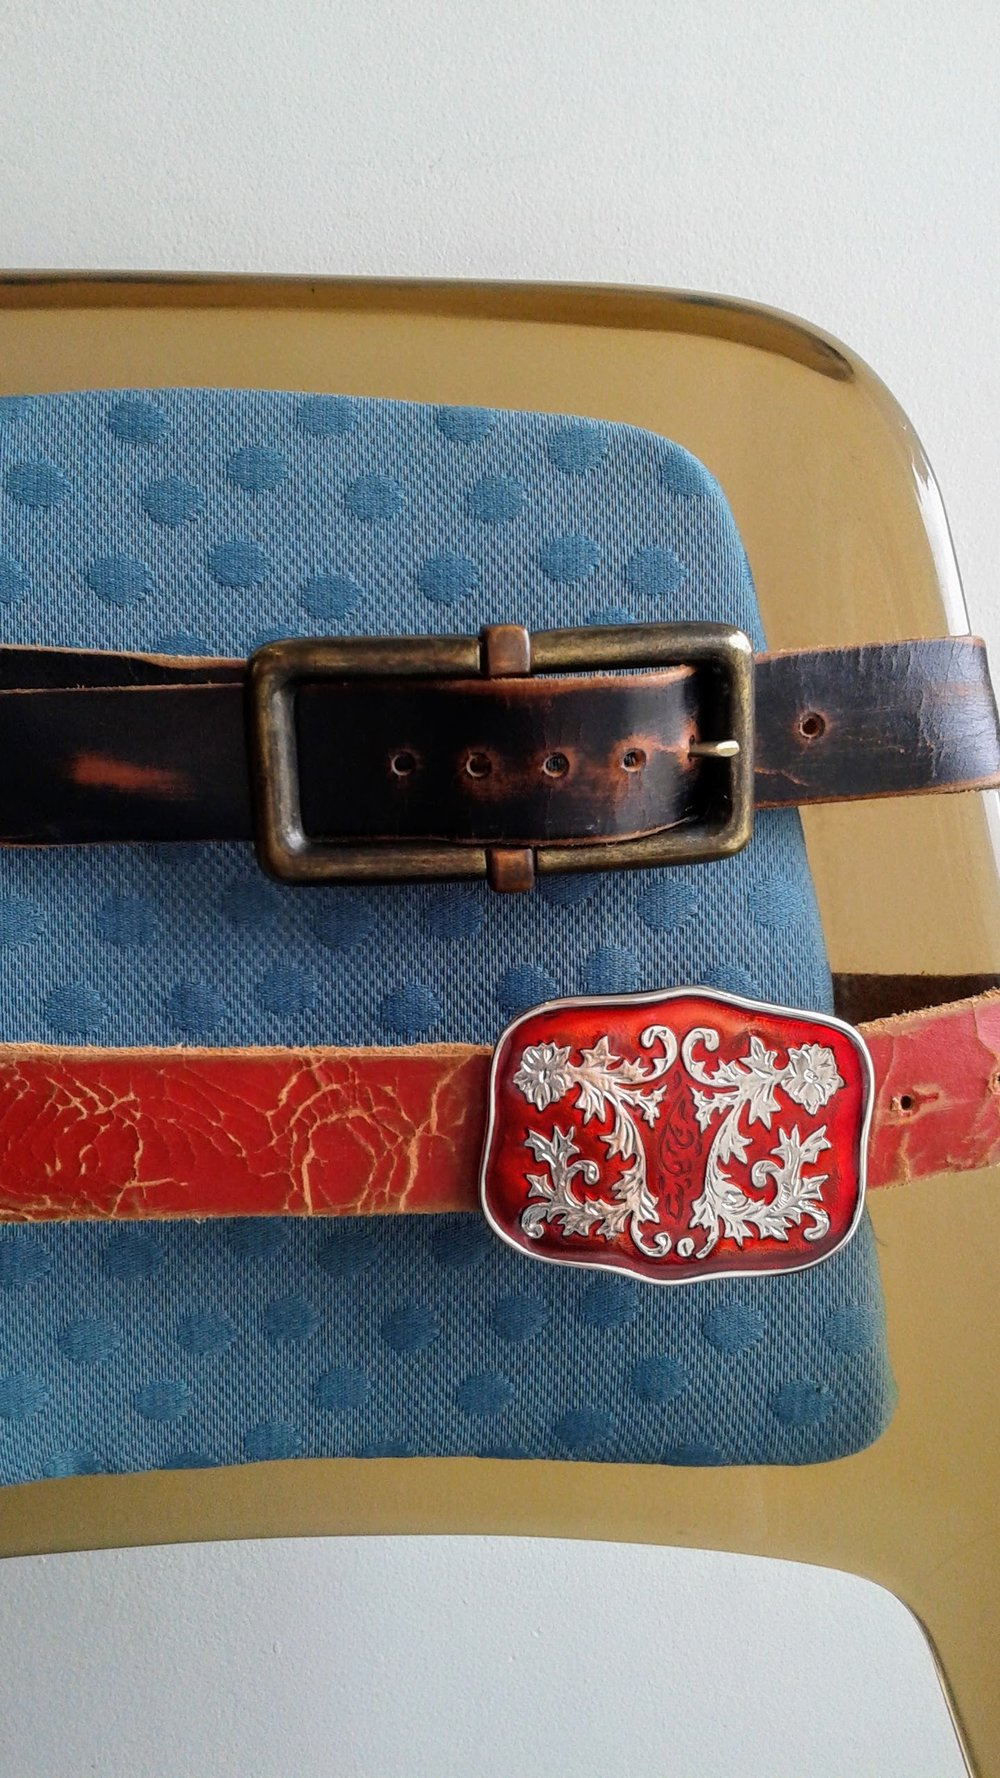 Brave belts, $45 each